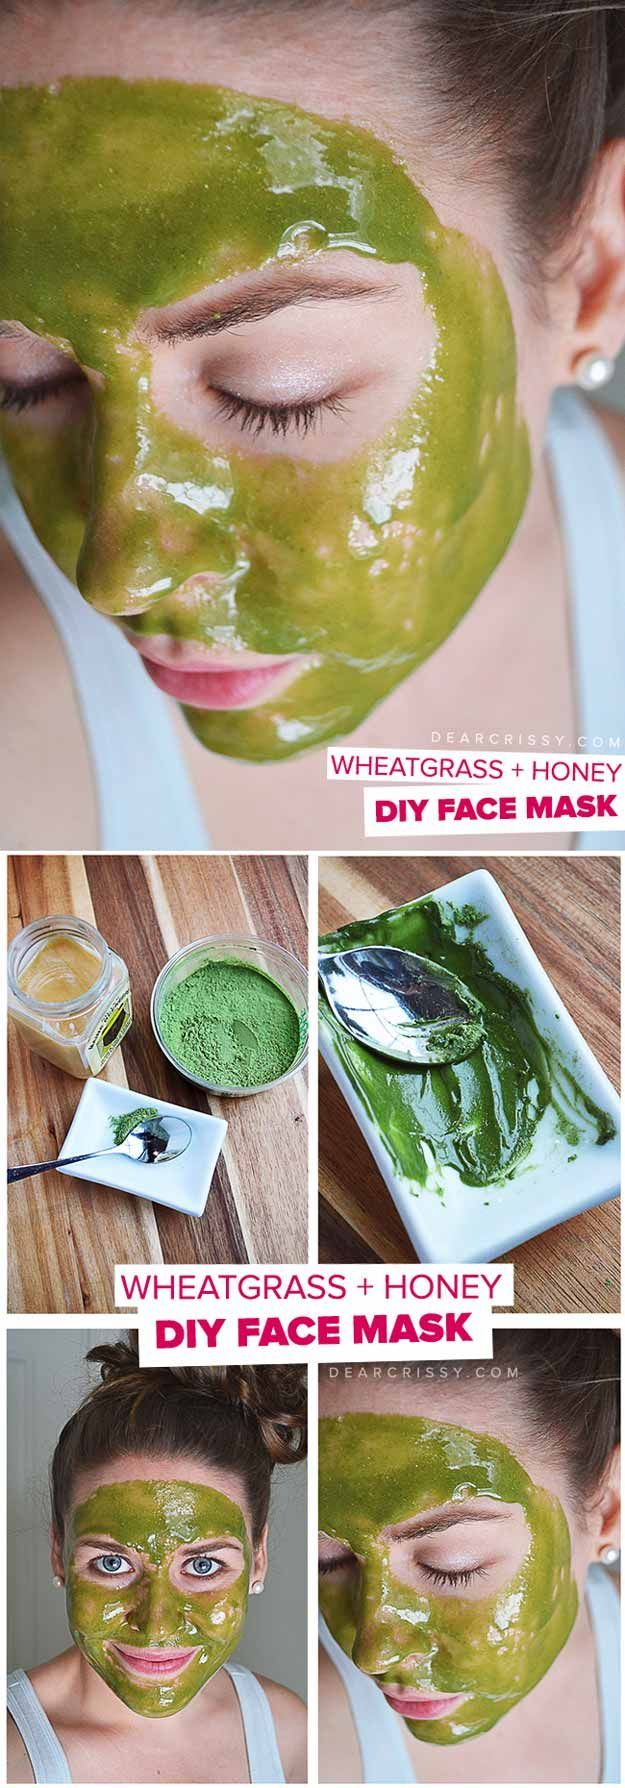 DIY Face Masks for Every Skin Problem - DIY Wheatgrass & Honey Face Mask - Easy Homemade Face Masks For Blackheads, For Acne, For Dry Skin and Remedies That Will Make Your Skin Glow - These Peel Ideas are Great For Teens and For Kids - Coconut Oil Recipes That Are Great For Pores and For Wrinkles - https://thegoddess.com/diy-face-masks